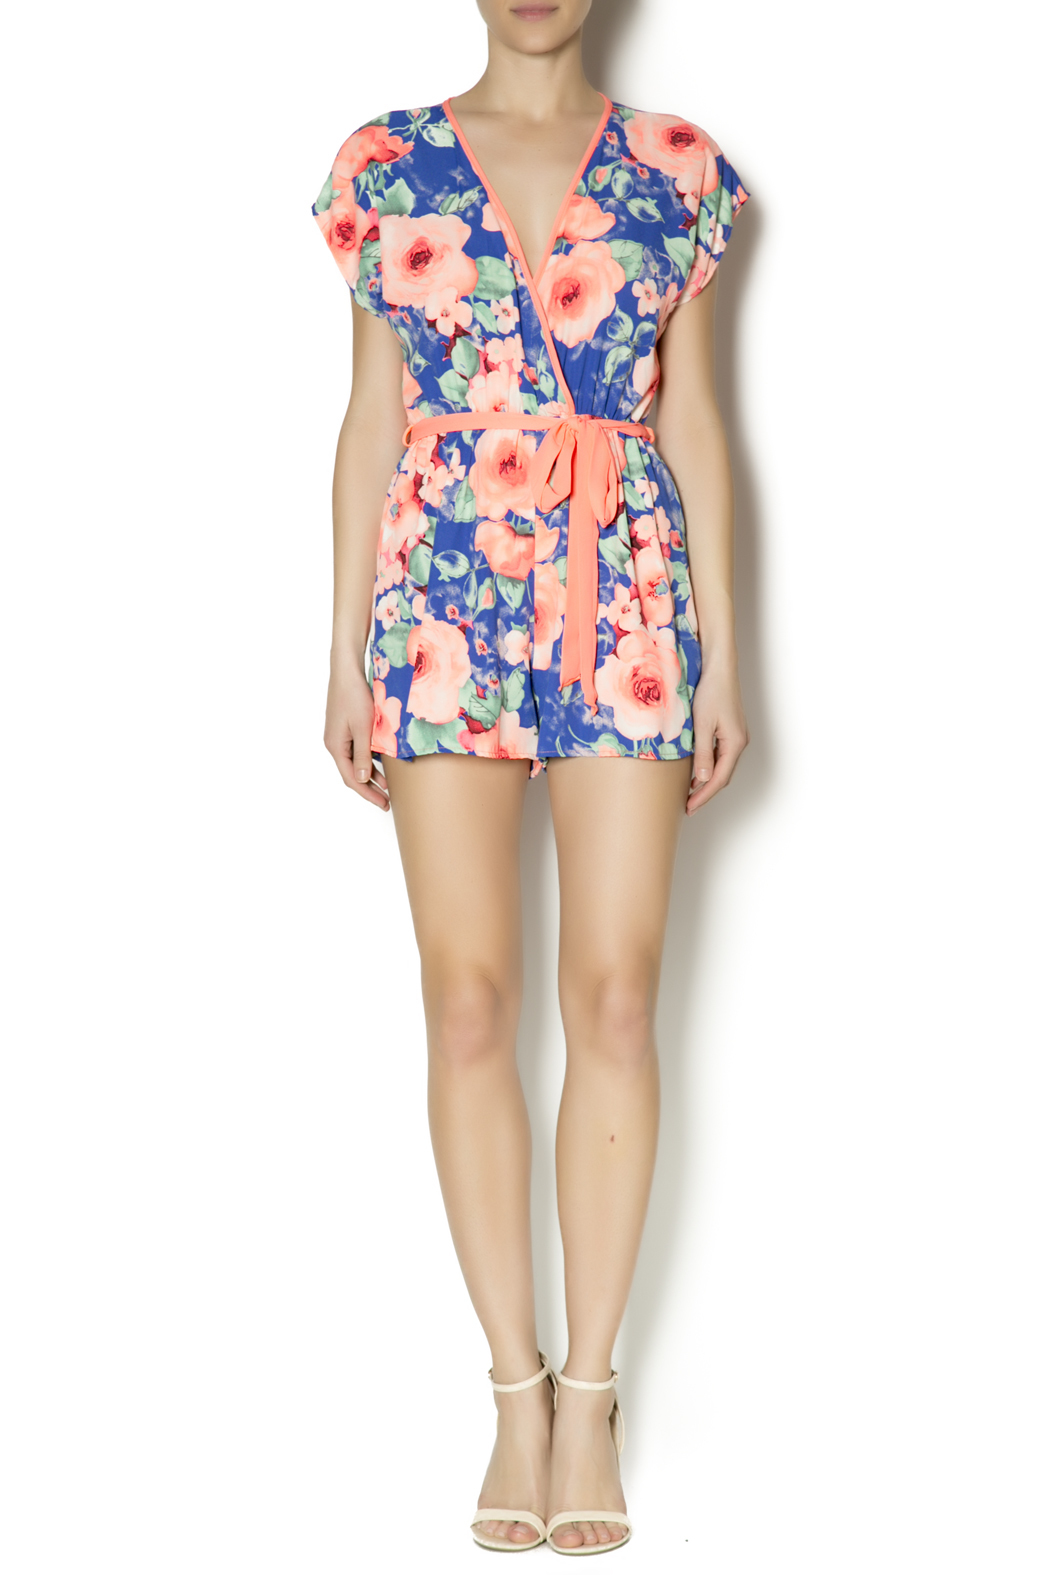 Lac Bleu Flowered Neon Romper from Texas by Ale's Closet ...